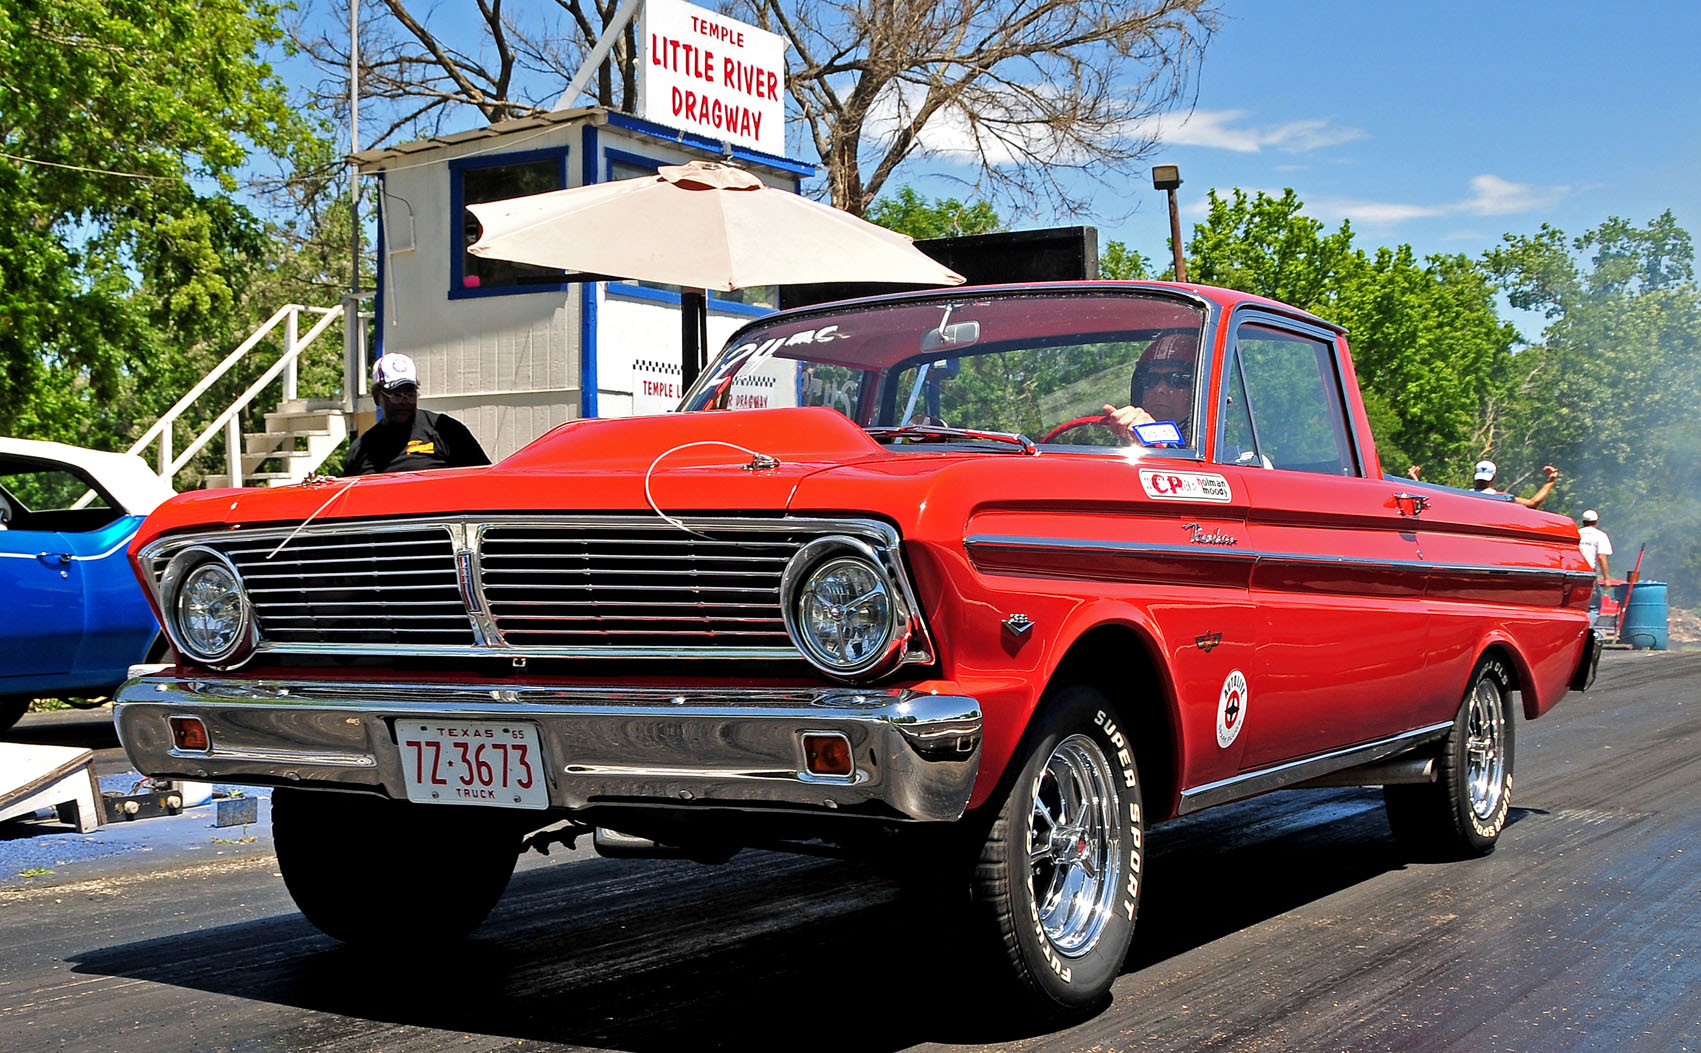 DsTdrbcPY c furthermore Tesla Crashes Parked Fire Truck Autopilot Blamed further Gold N Greedy 1966 Ford Mustang Gasser together with 65 Falcon Sprint For Sale in addition 5 Tips For Building A 5000 Pro Touring Mustang. on 65 falcon drag car